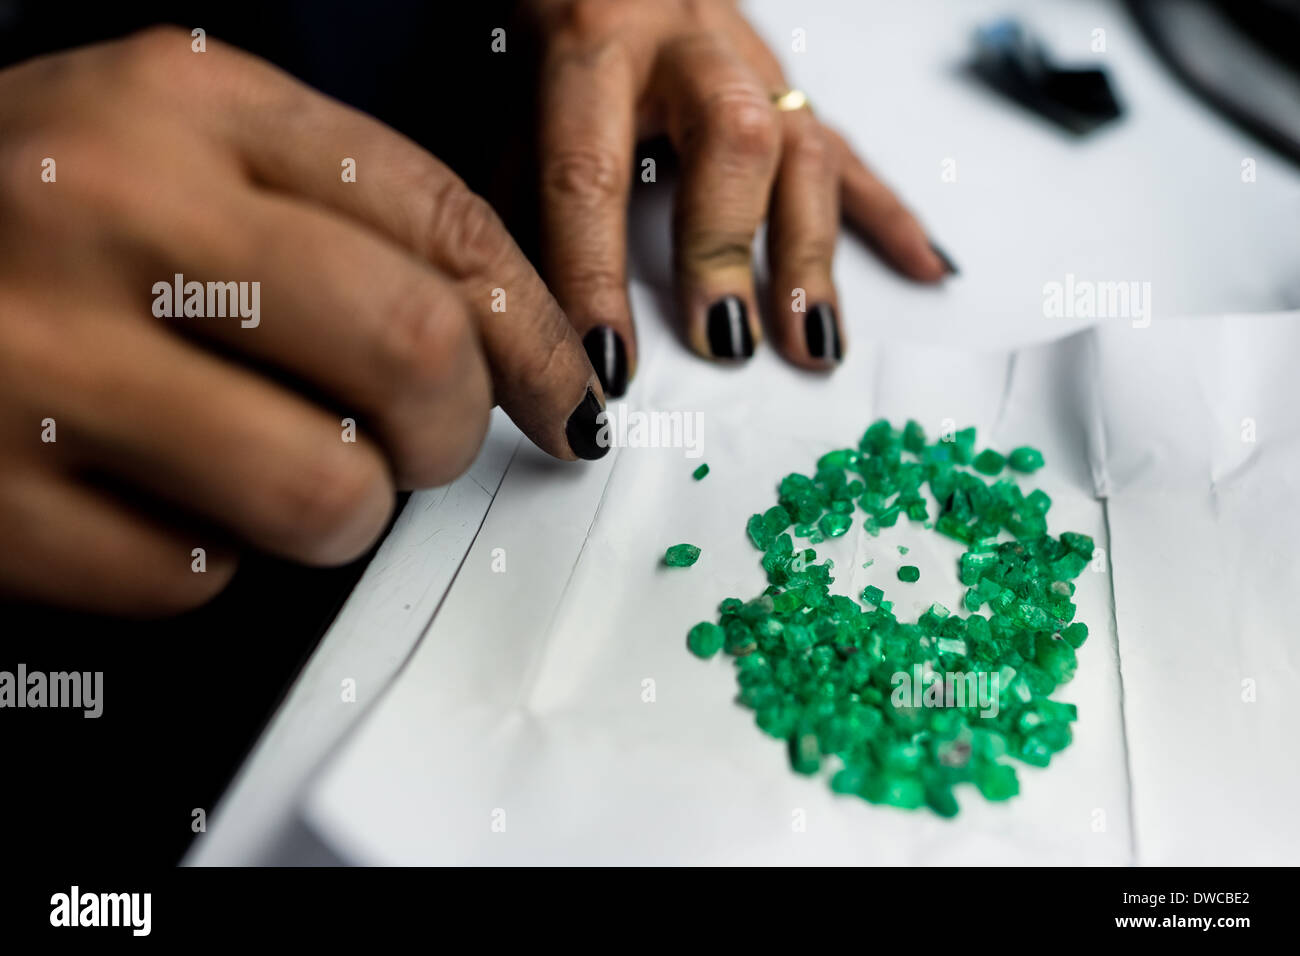 An emerald cutter sorts out rough emeralds seen before being processed in a cutting and polishing workshop in Bogota, Colombia. - Stock Image